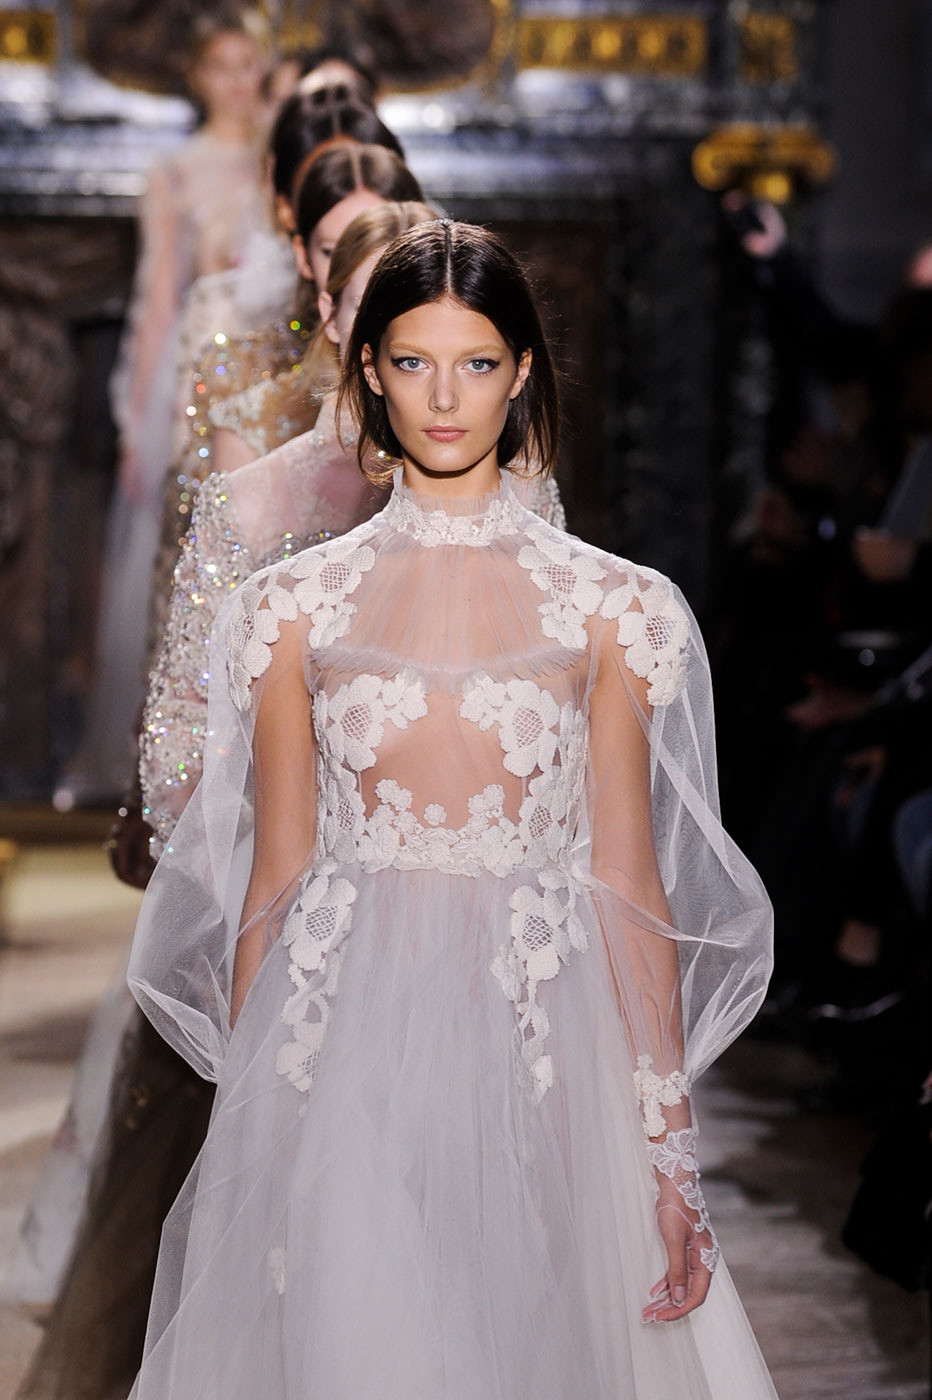 With wedding season in full effect, what do you think of these gown alternatives?